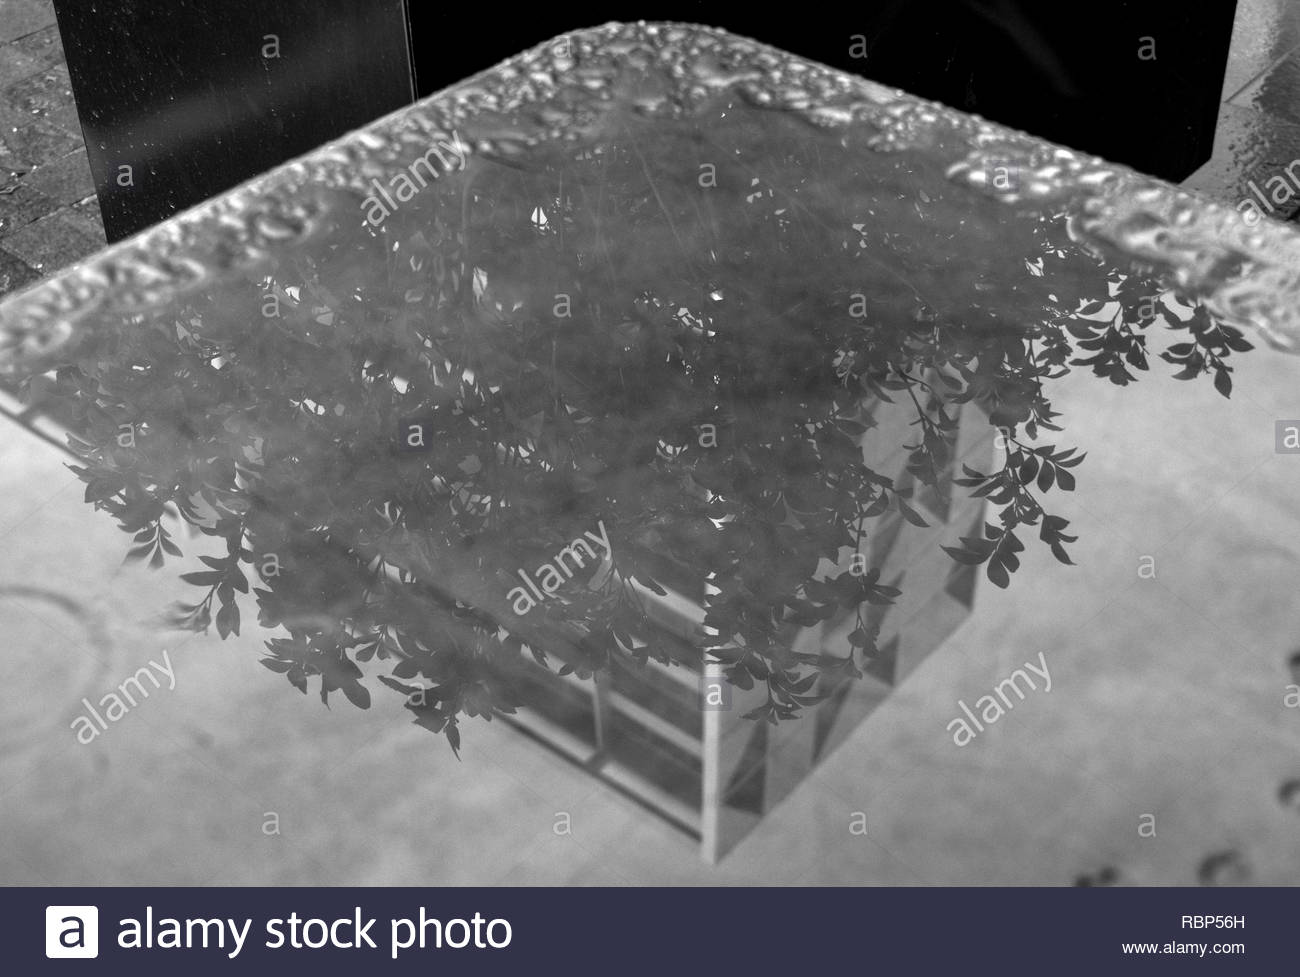 Reflection of building on wet table - Stock Image